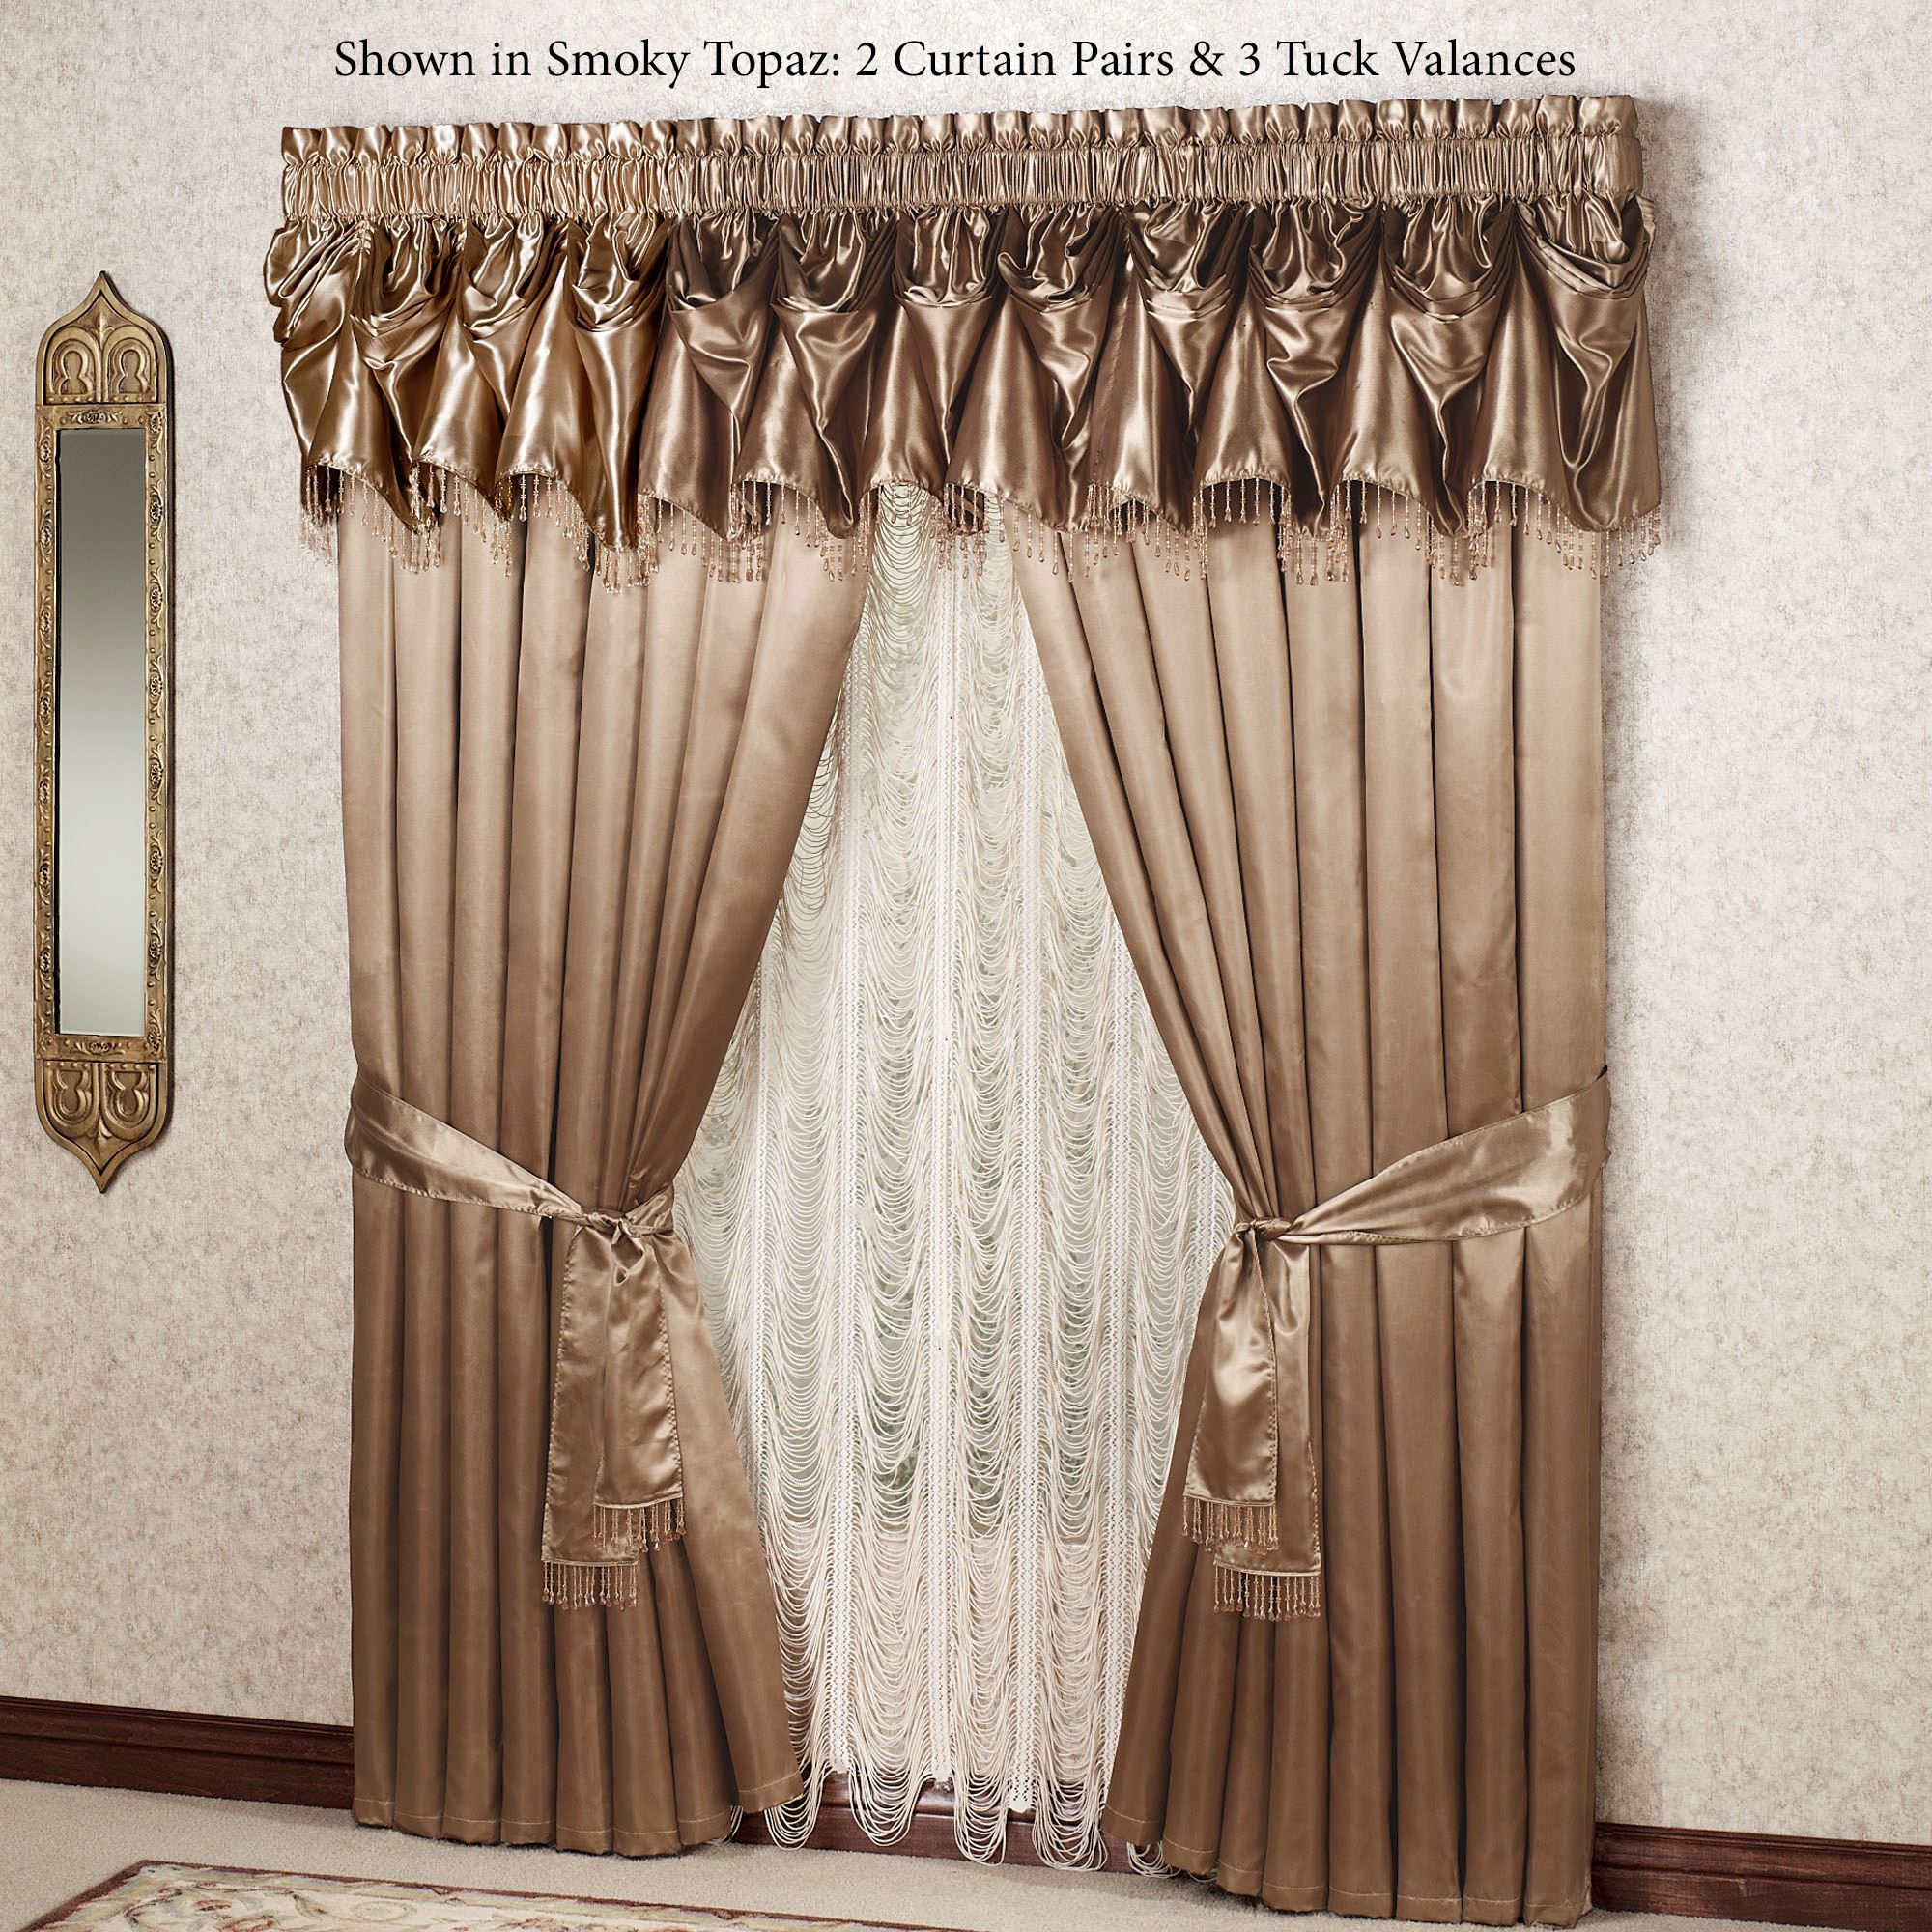 treatments drapes with custom and valance modern window designer valances fabrics draperies concept